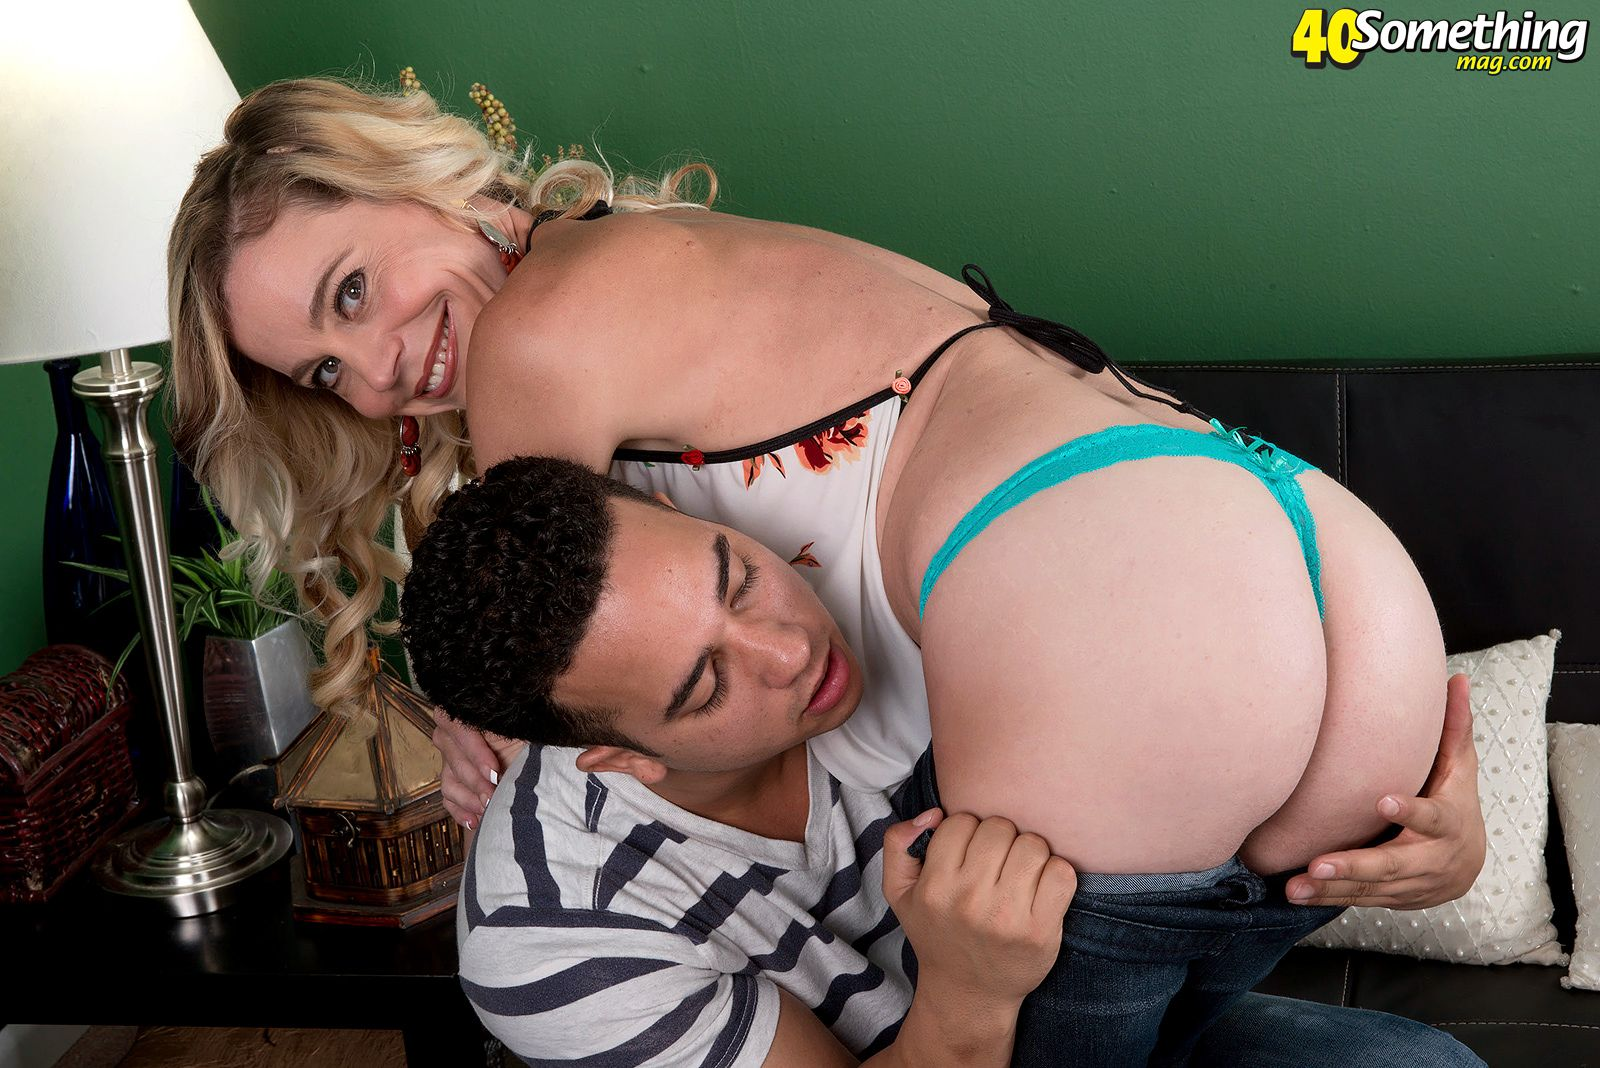 Diandra - A CREAMPIE FOR THE LITTLE FUCK TOY 02